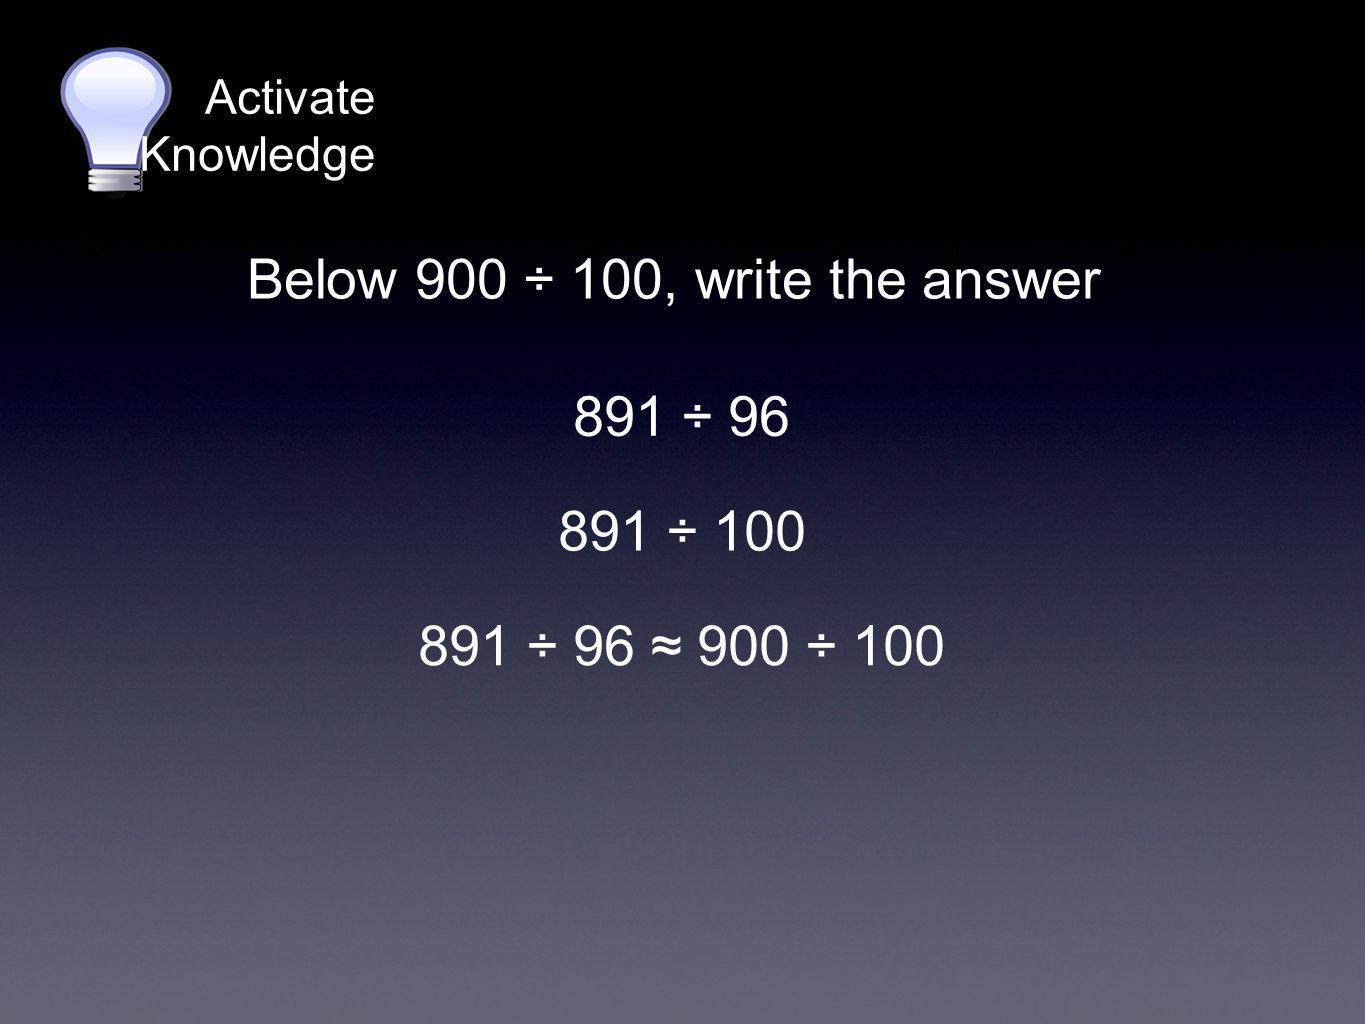 Below 900 ÷ 100, write the answer